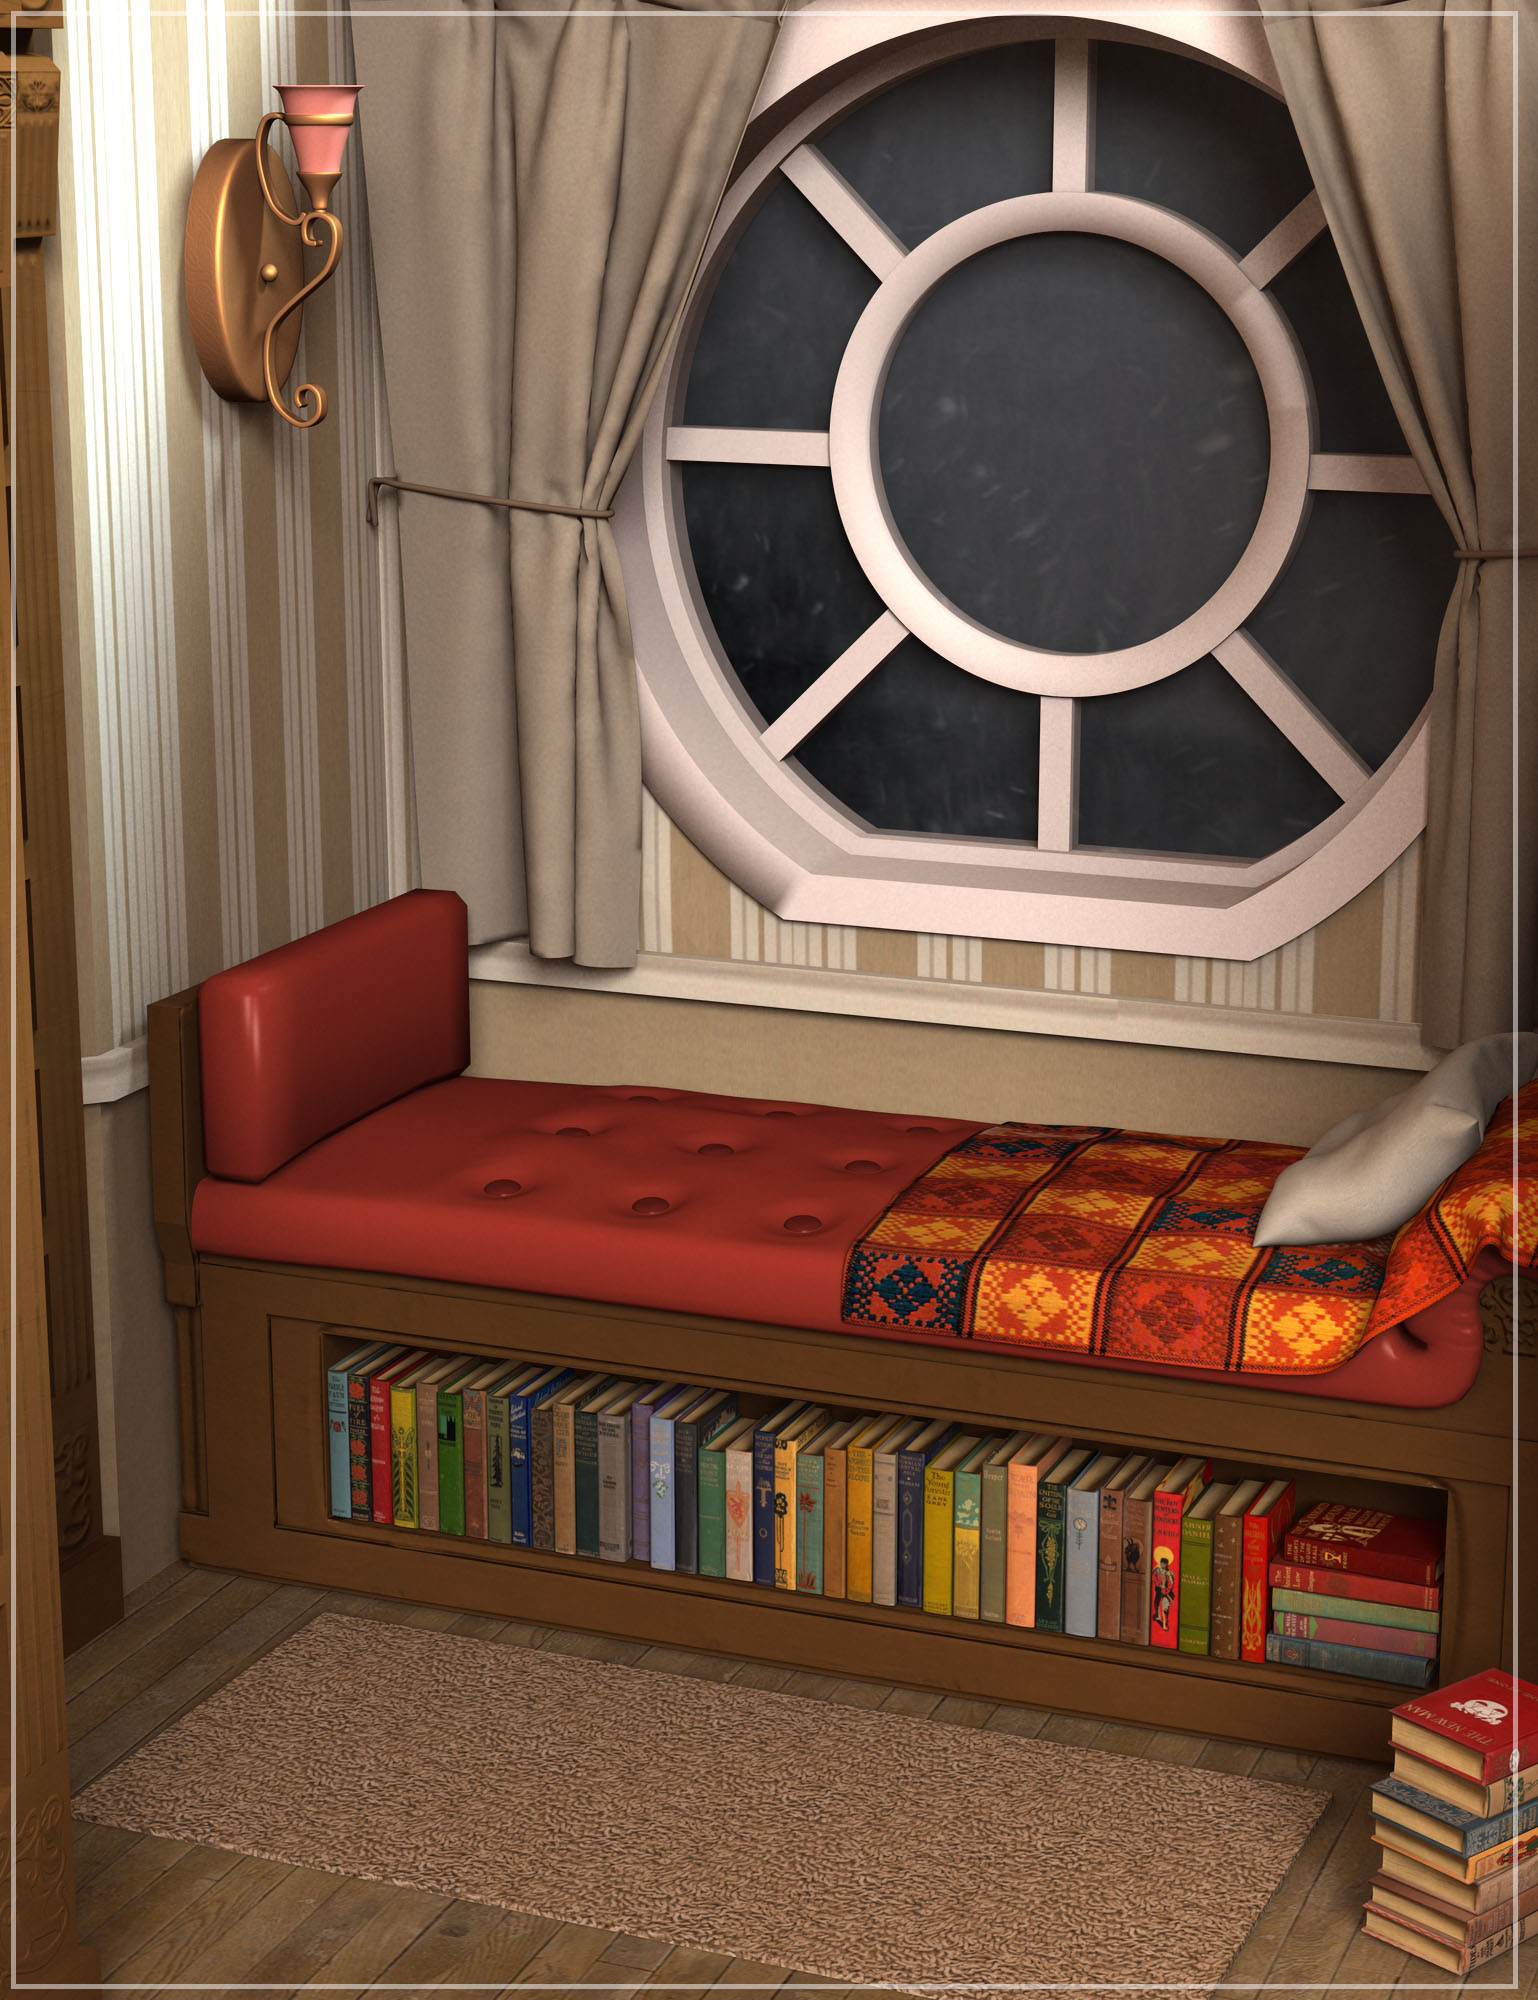 The Nook by: Oskarsson, 3D Models by Daz 3D